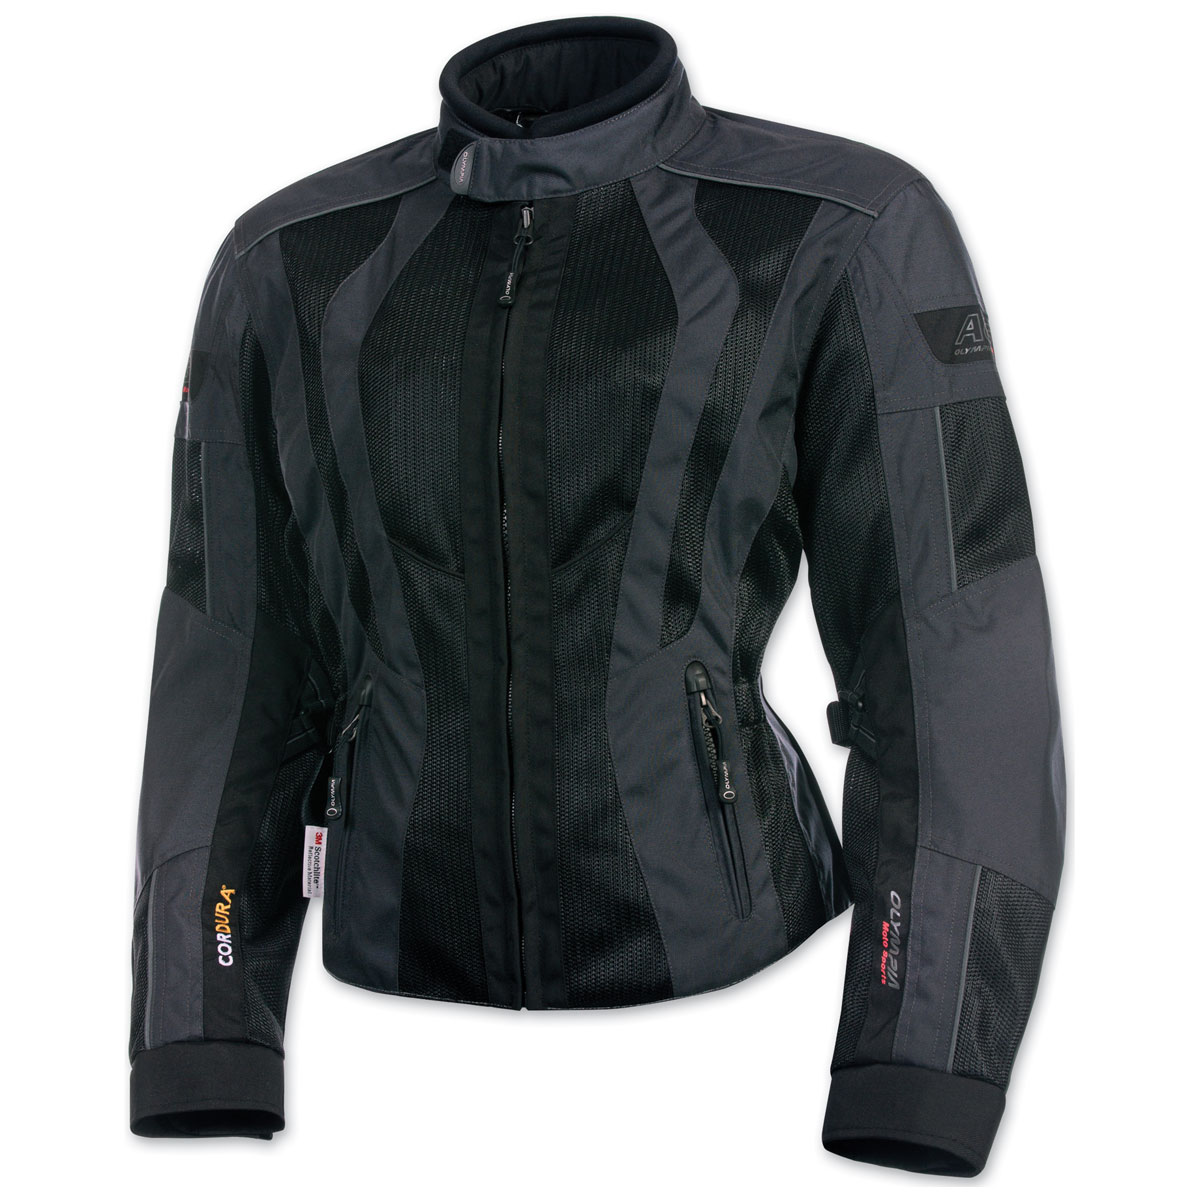 Olympia Moto Sports Women's Airglide 5 Mesh Tech Slate Jacket